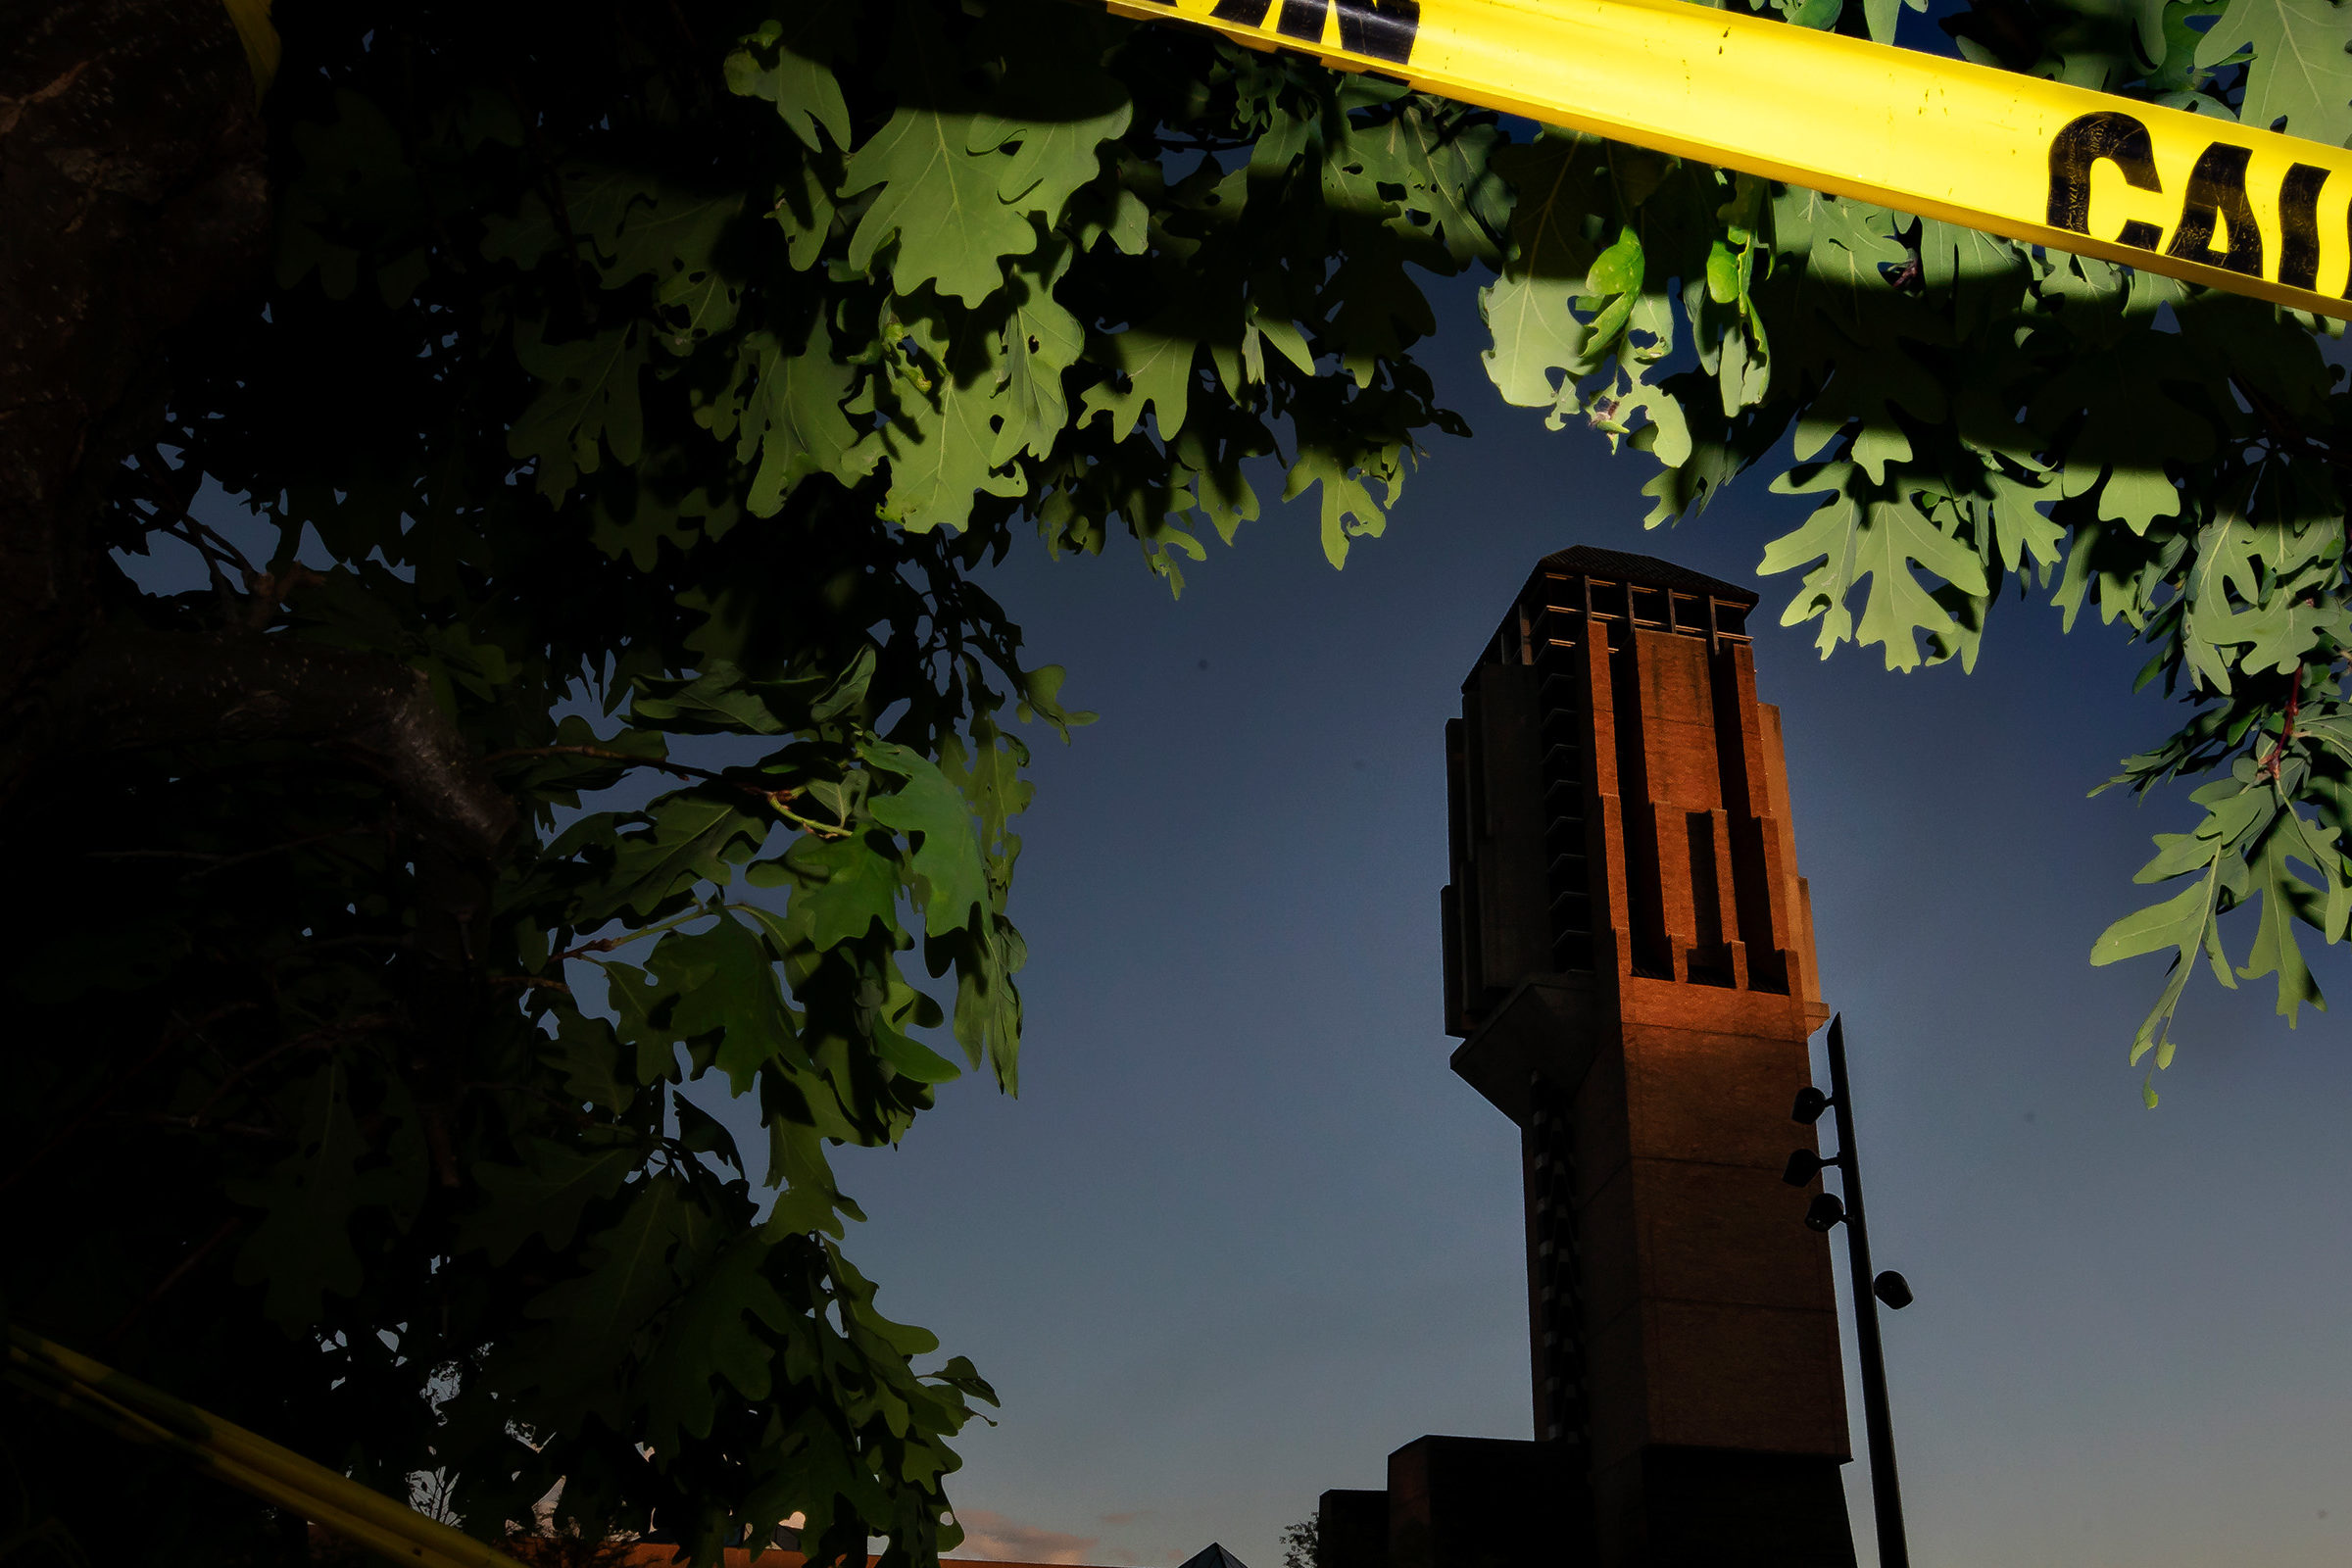 View of the North Campus Bell Tower blocked by caution tape